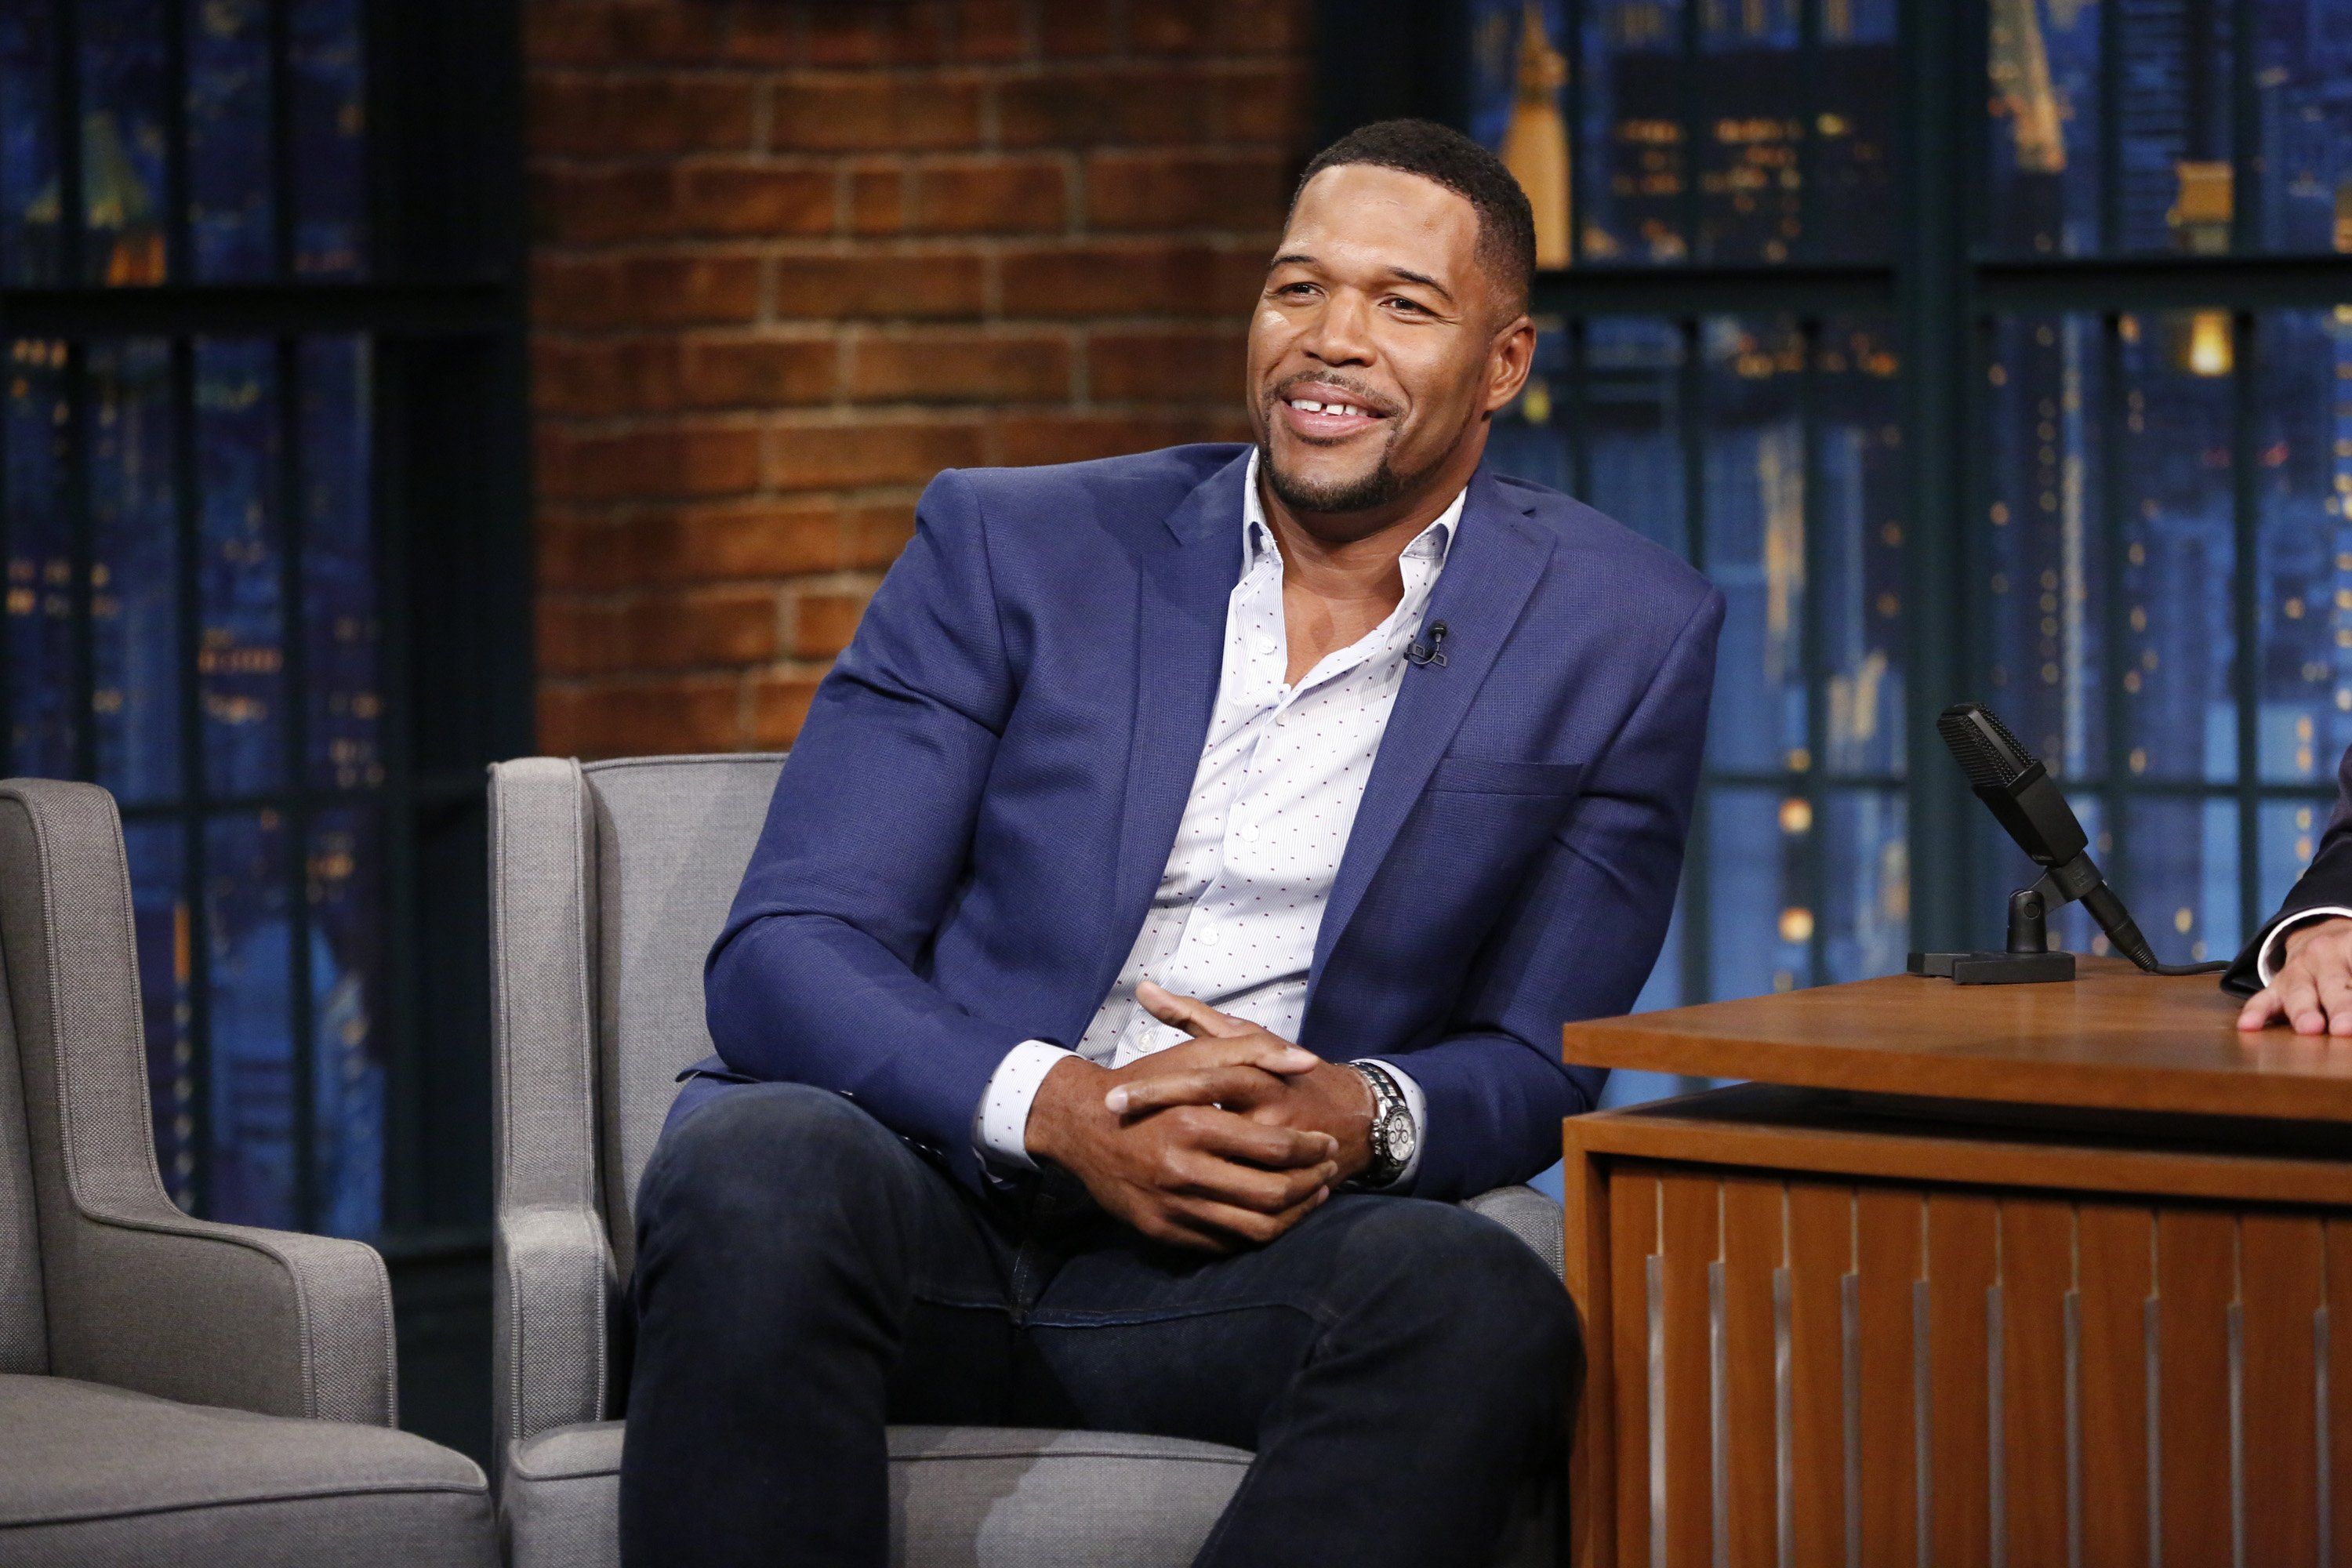 """Michael Strahan during an interview on """"Late Night with Seth Meyers"""" on October 2, 2017. 